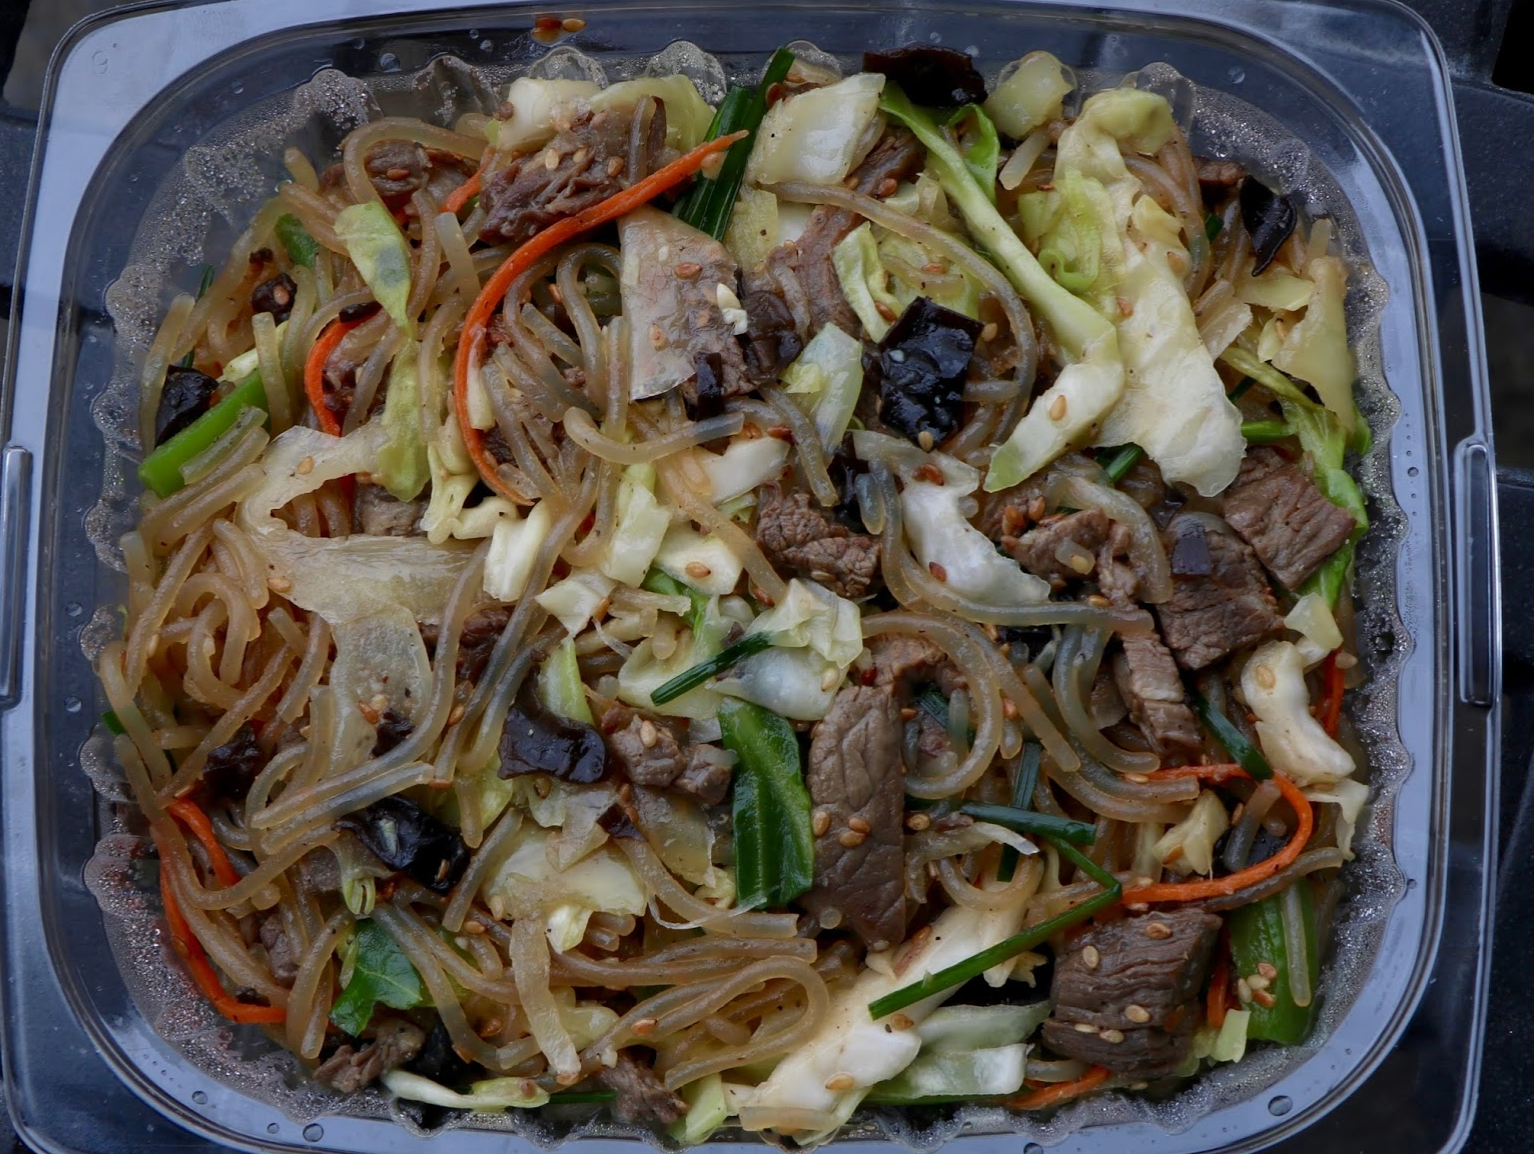 Japchae is a dish composed of cellophane noodles with a soy sauce and sesame oil sauce. Credit: Abigail Massar / The Foothill Dragon Press